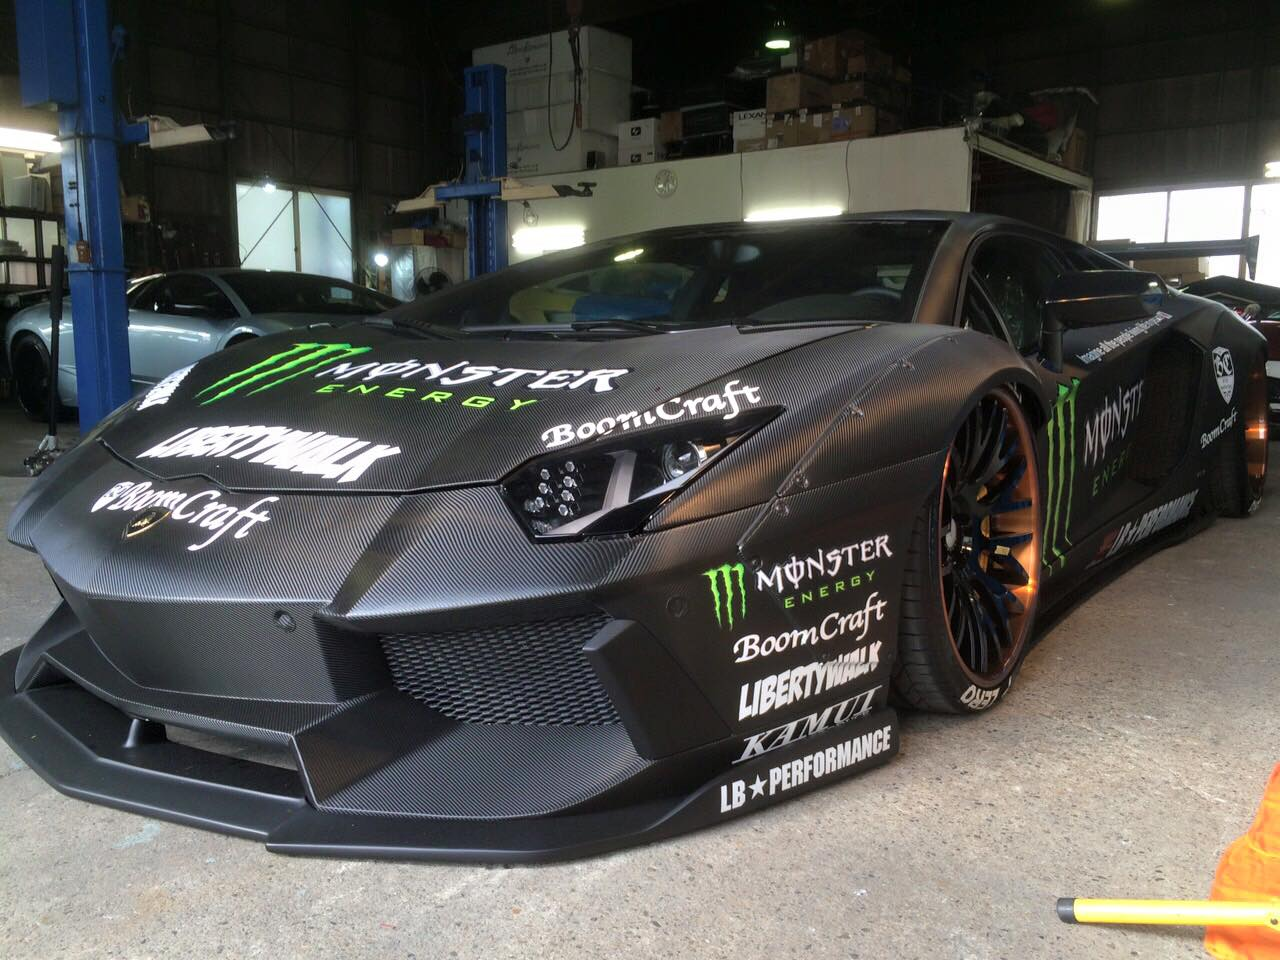 Challenger Scat Pack >> Liberty Walk Lamborghini Aventador with Monster Livery Looks like a Drift Car - autoevolution